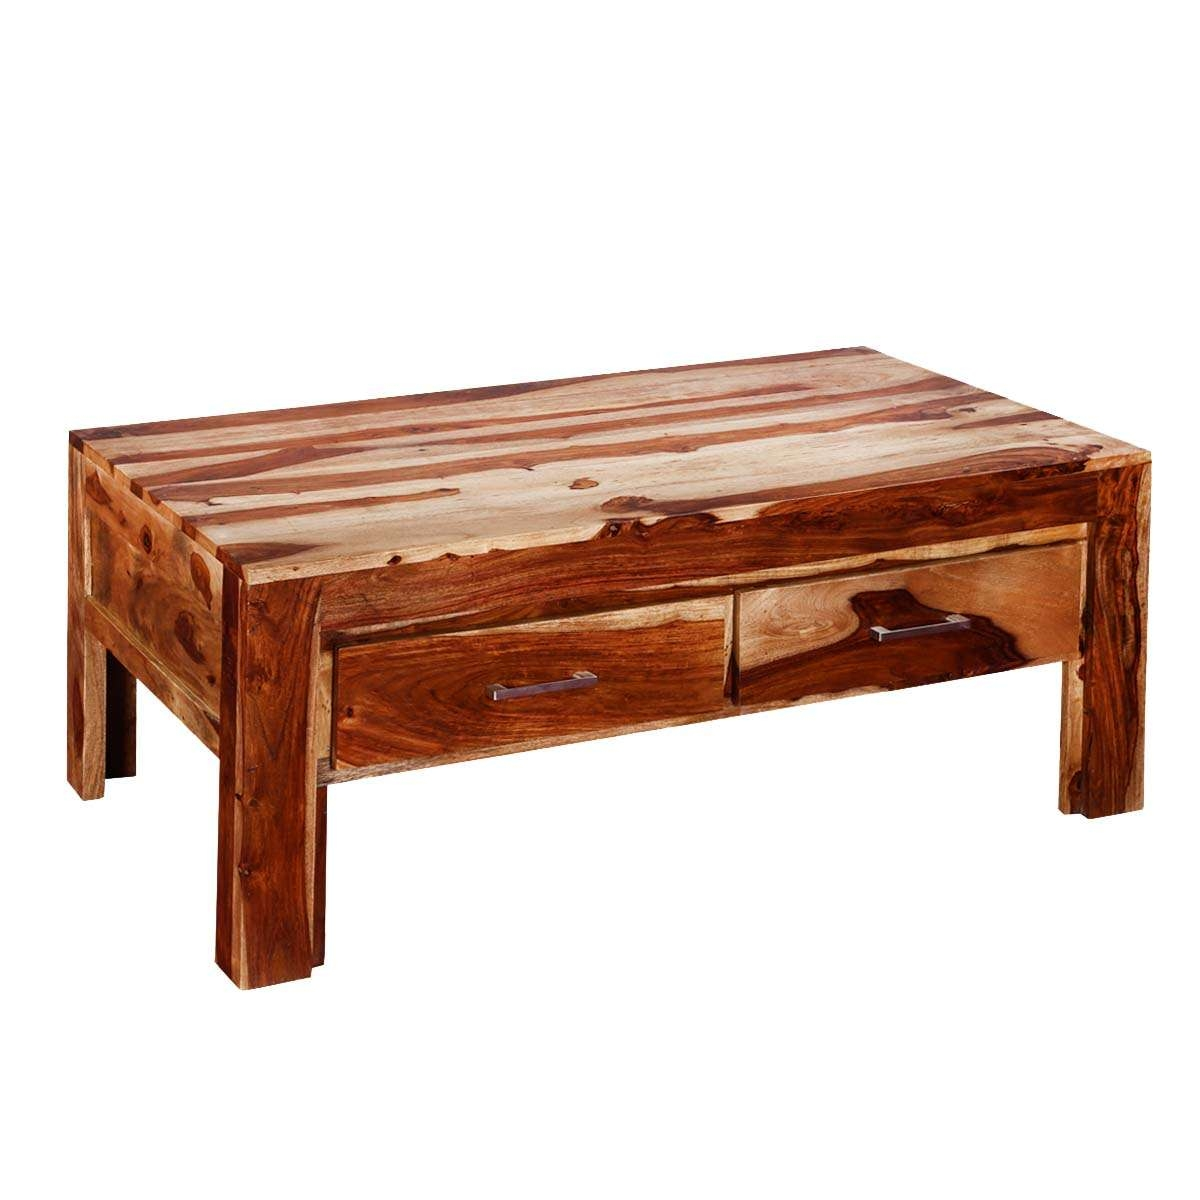 "Widely Used Indian Coffee Tables With Regard To Frontier Indian Rosewood 45"" Coffee Table W Drawers (View 20 of 20)"